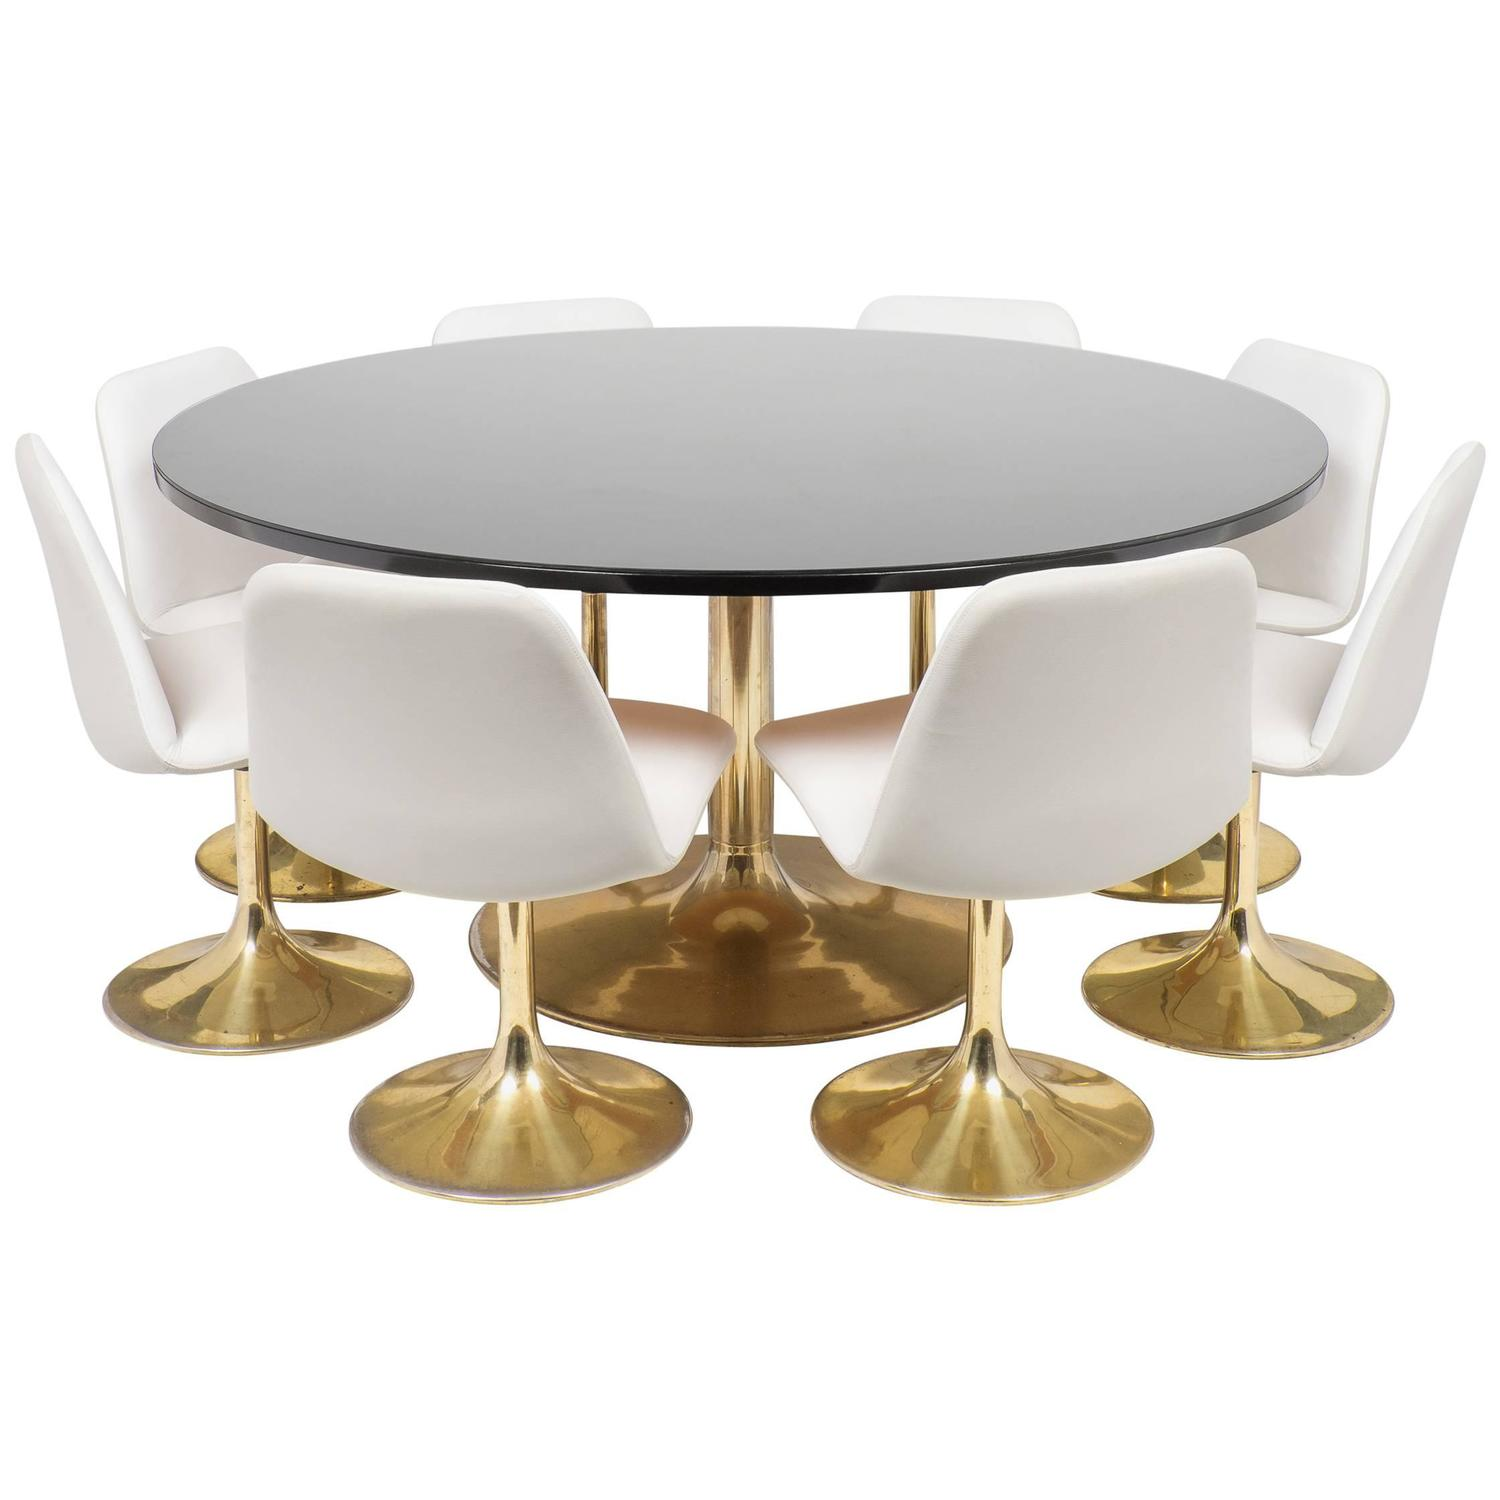 Tulip table and chair dining set at 1stdibs for Table and chair set